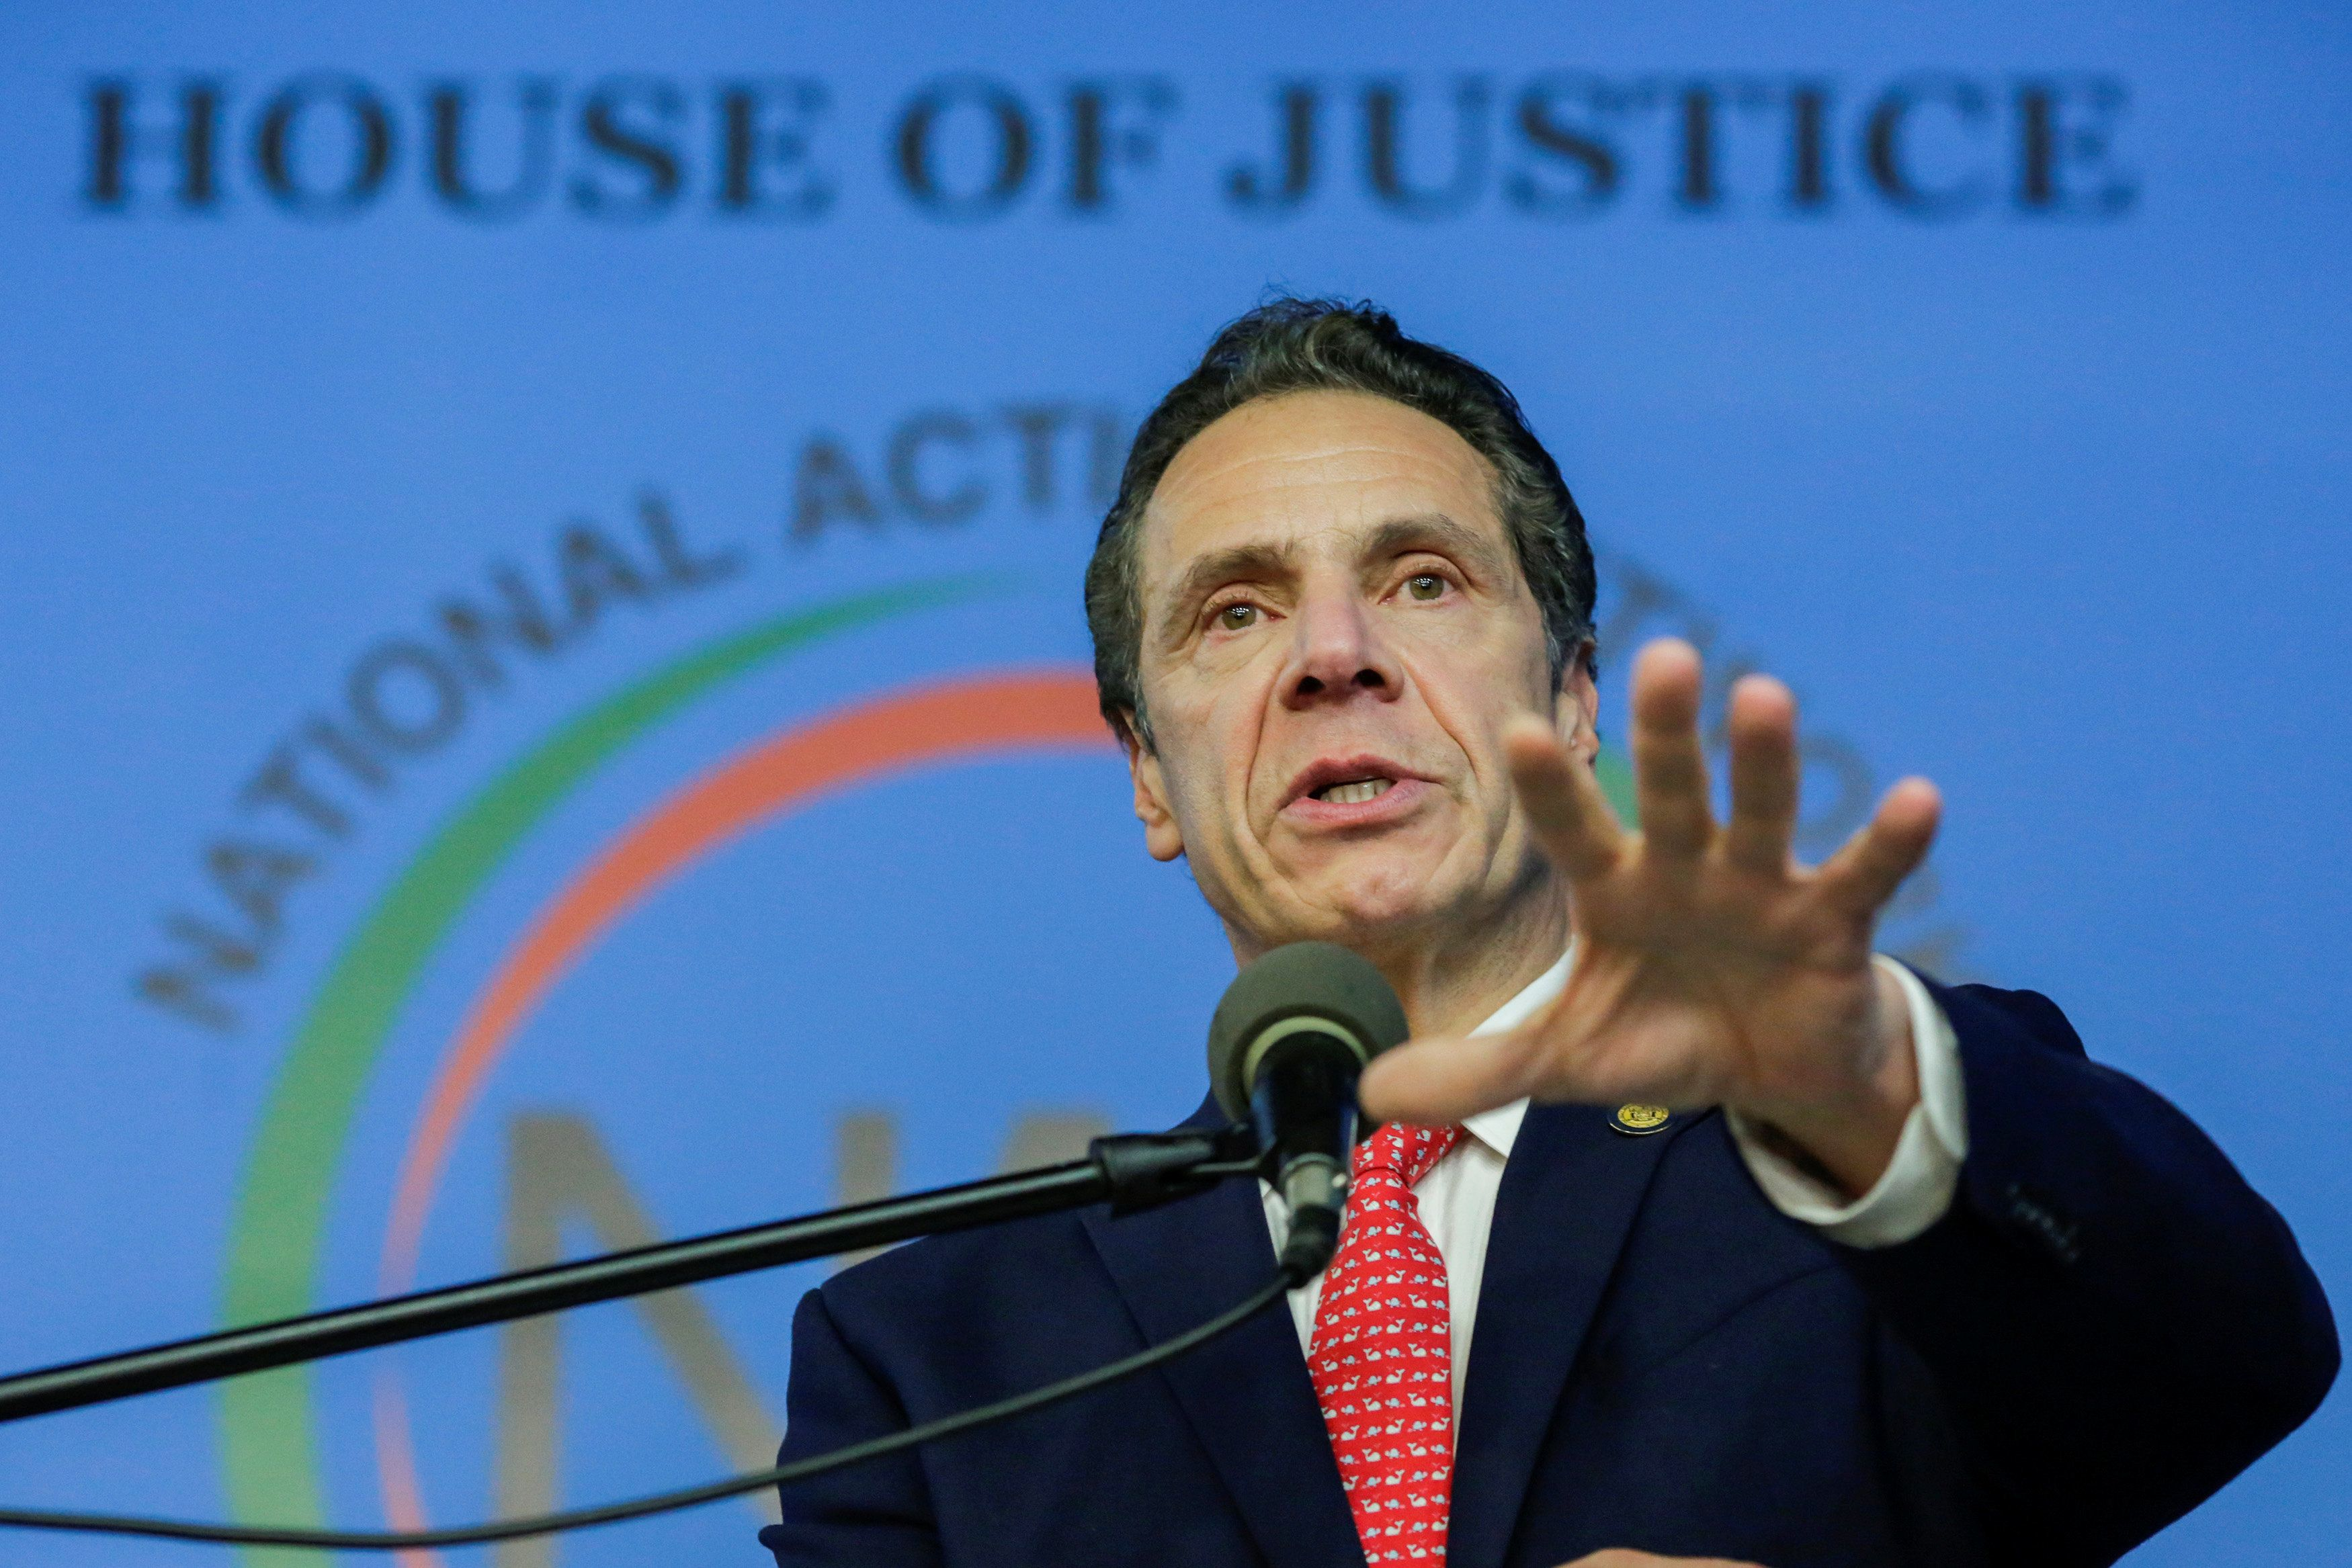 Cuomo Calls For Schneiderman To Resign Over Physical Abuse Allegations